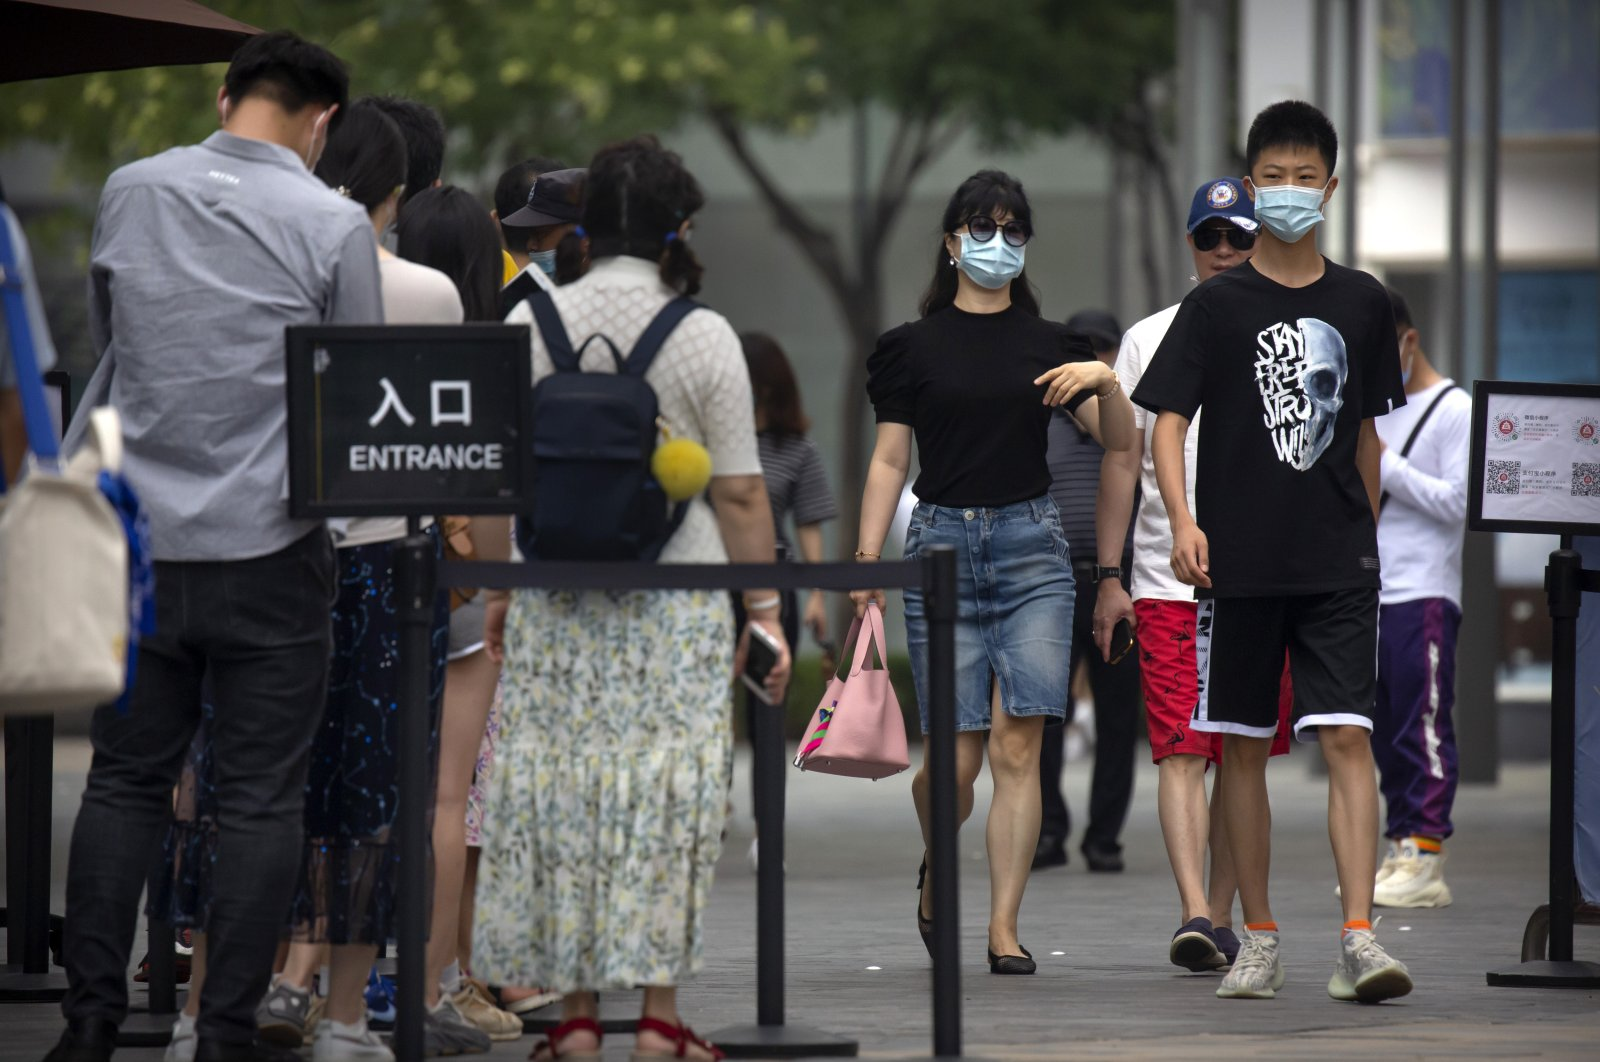 People wearing face masks to protect against the new coronavirus walk past a line of people waiting to show the results of a smartphone health check app before they can enter an outdoor shopping mall in Beijing, Saturday, July 4, 2020. (AP Photo)